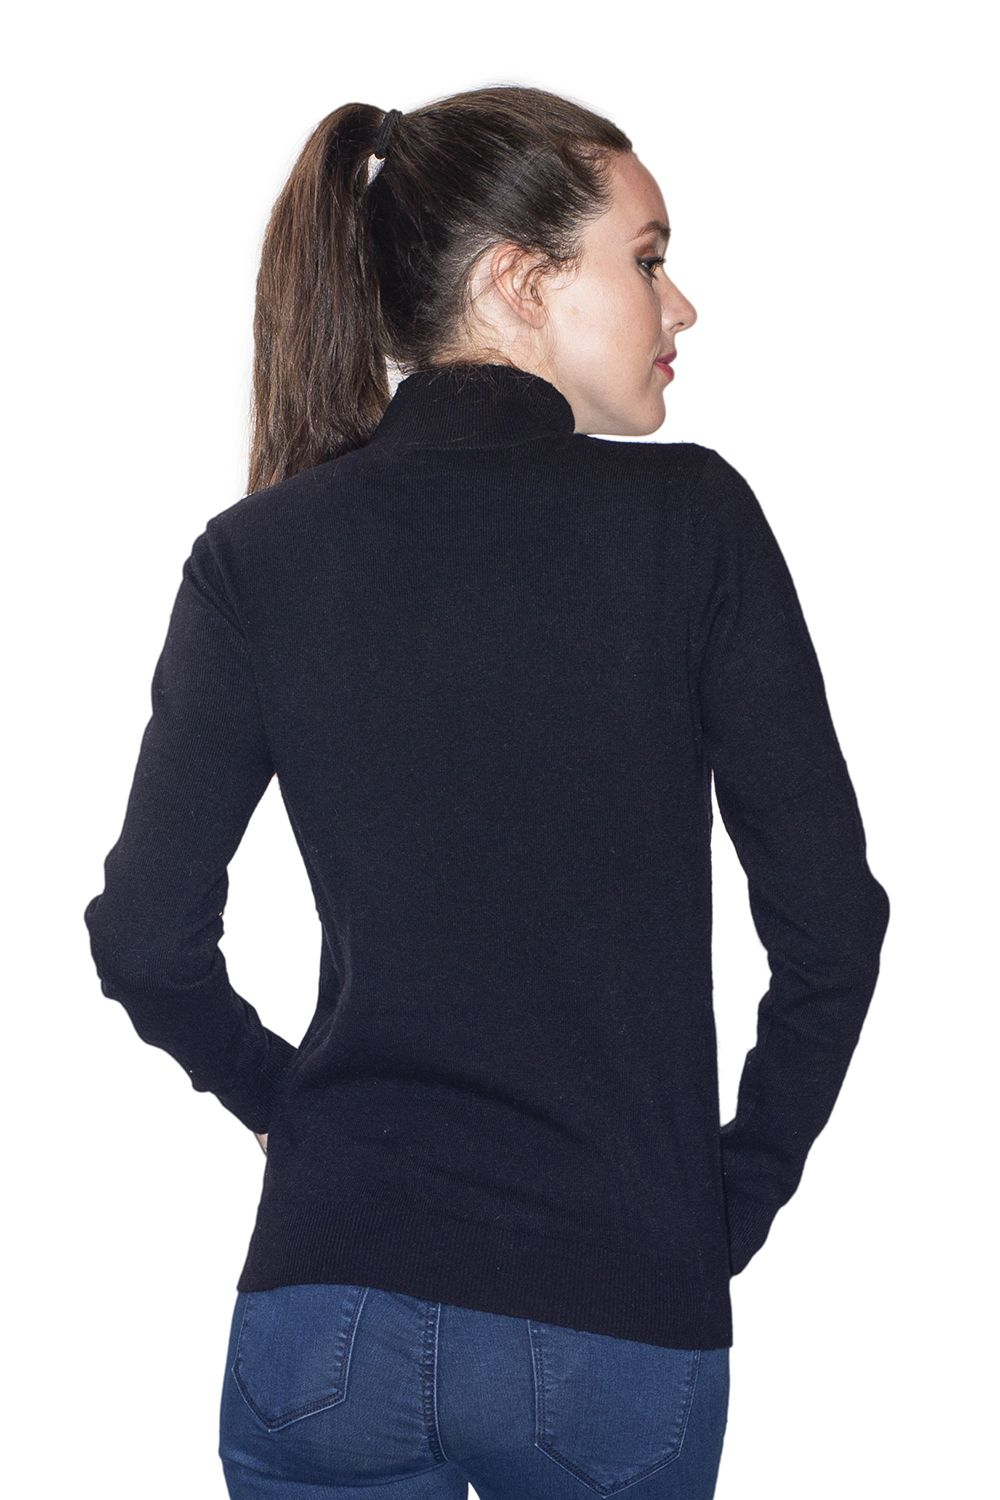 Assuili High Neck Sweater with Buttoned Shoulders in Black